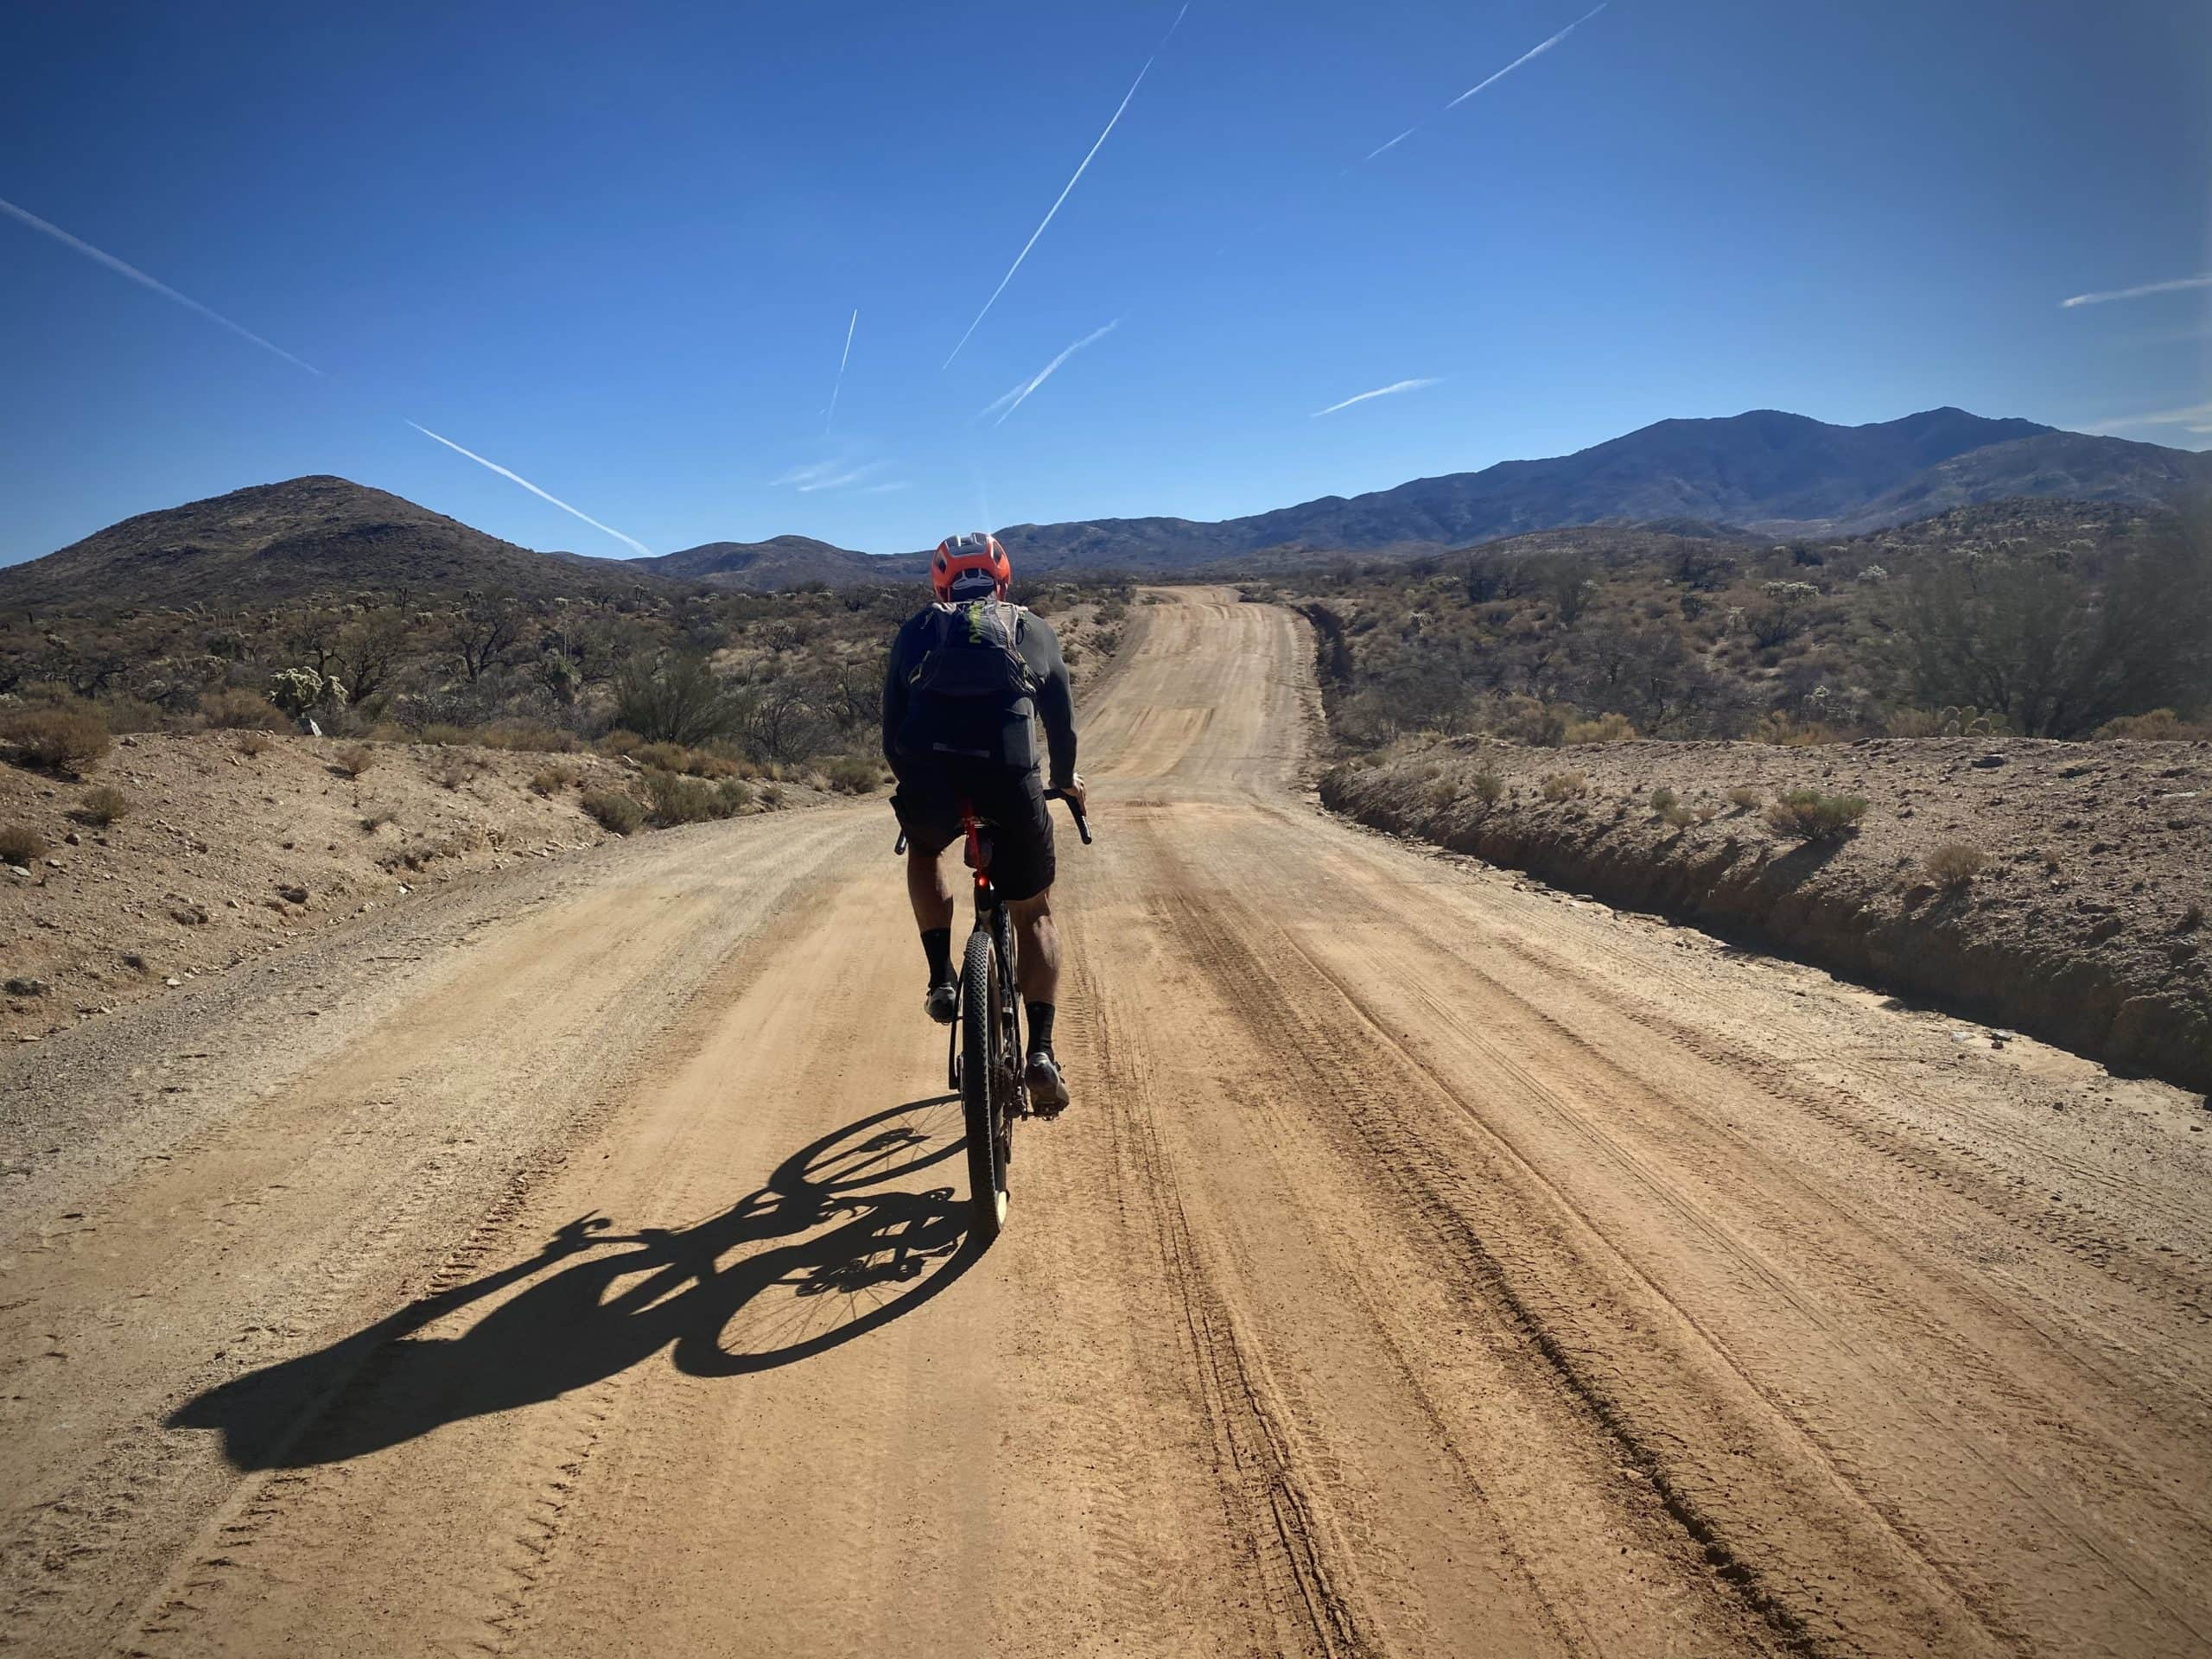 Gravel cyclist riding Freeman road with mountains in the background.